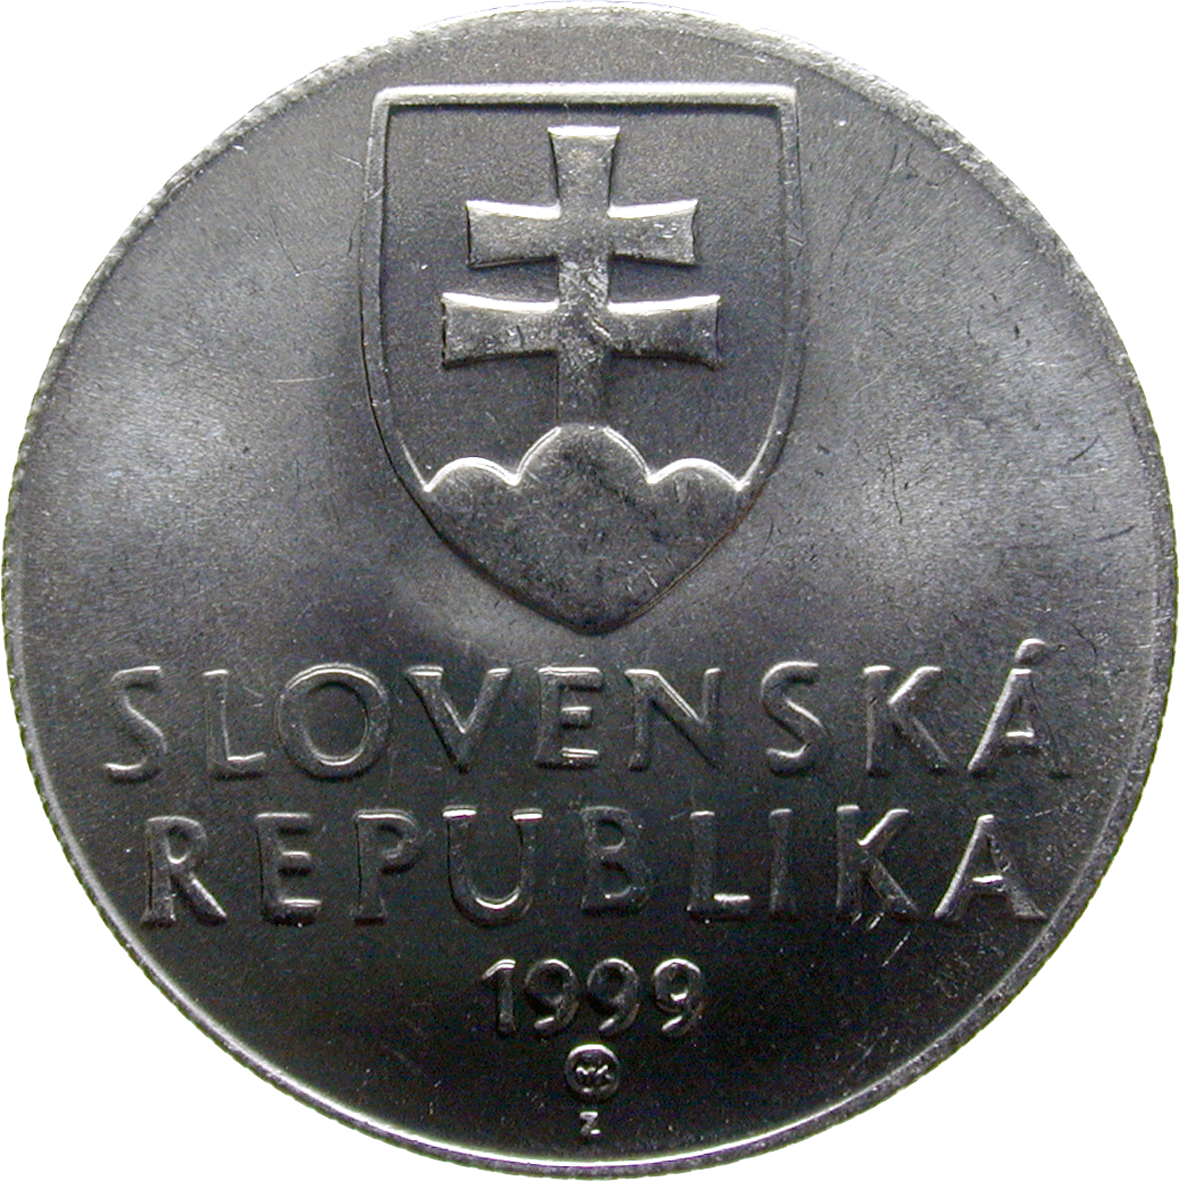 Slovak Republic, 20 Haliers 1999 (obverse)